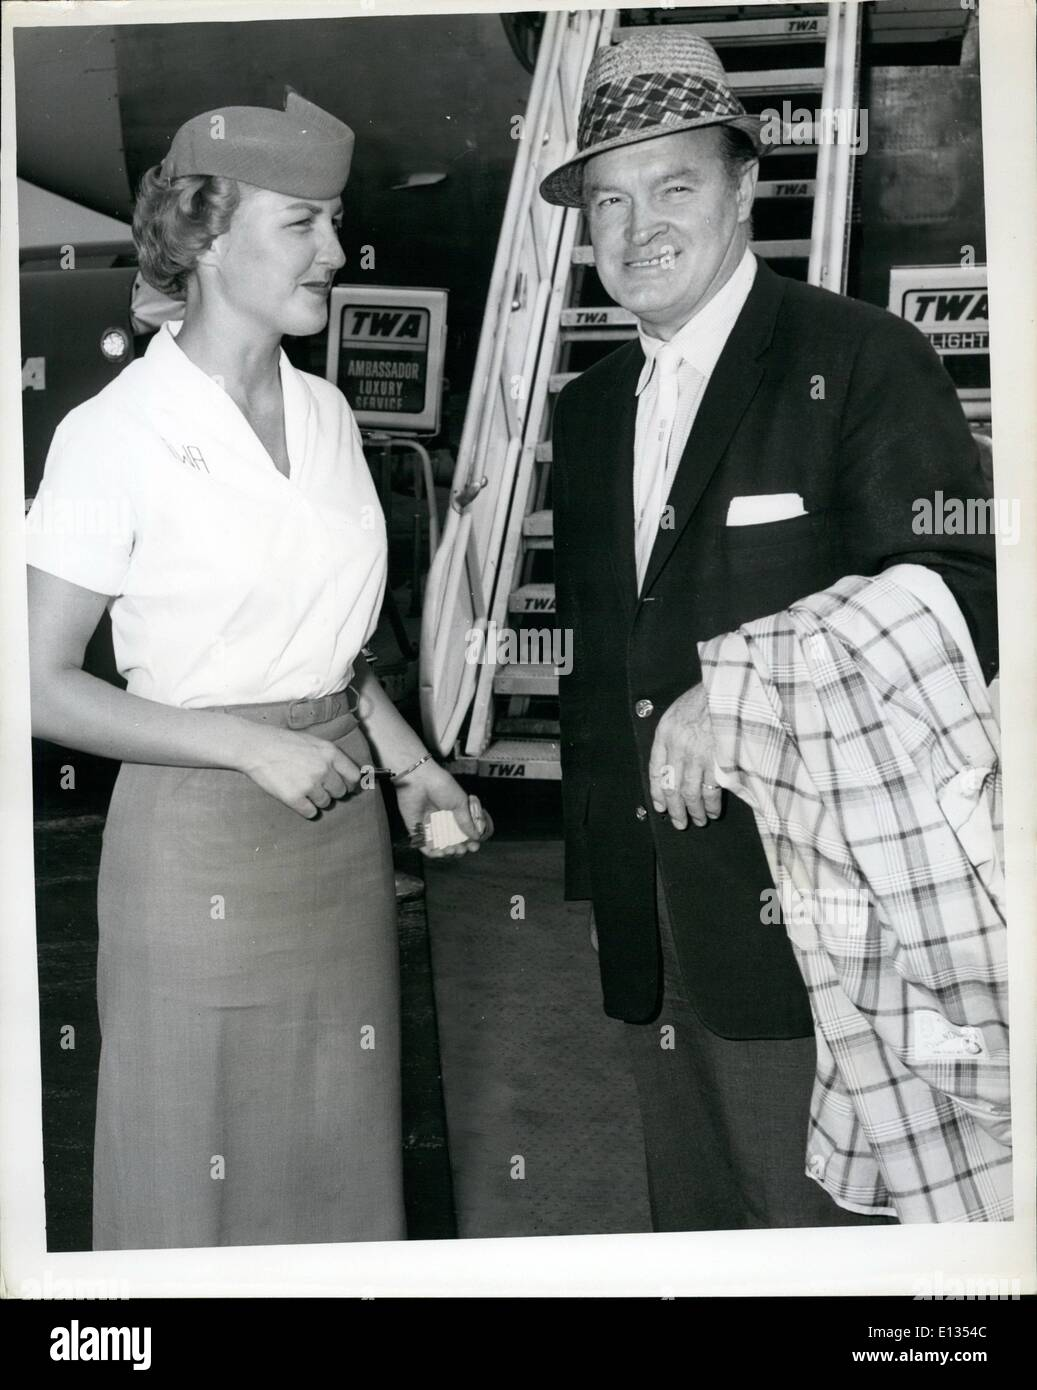 Feb. 26, 2012 - N.Y. International Airport, July 29 - Popular Comedian, Bob Hope Is Greeted By TWA Hostess Lucille Stock Photo